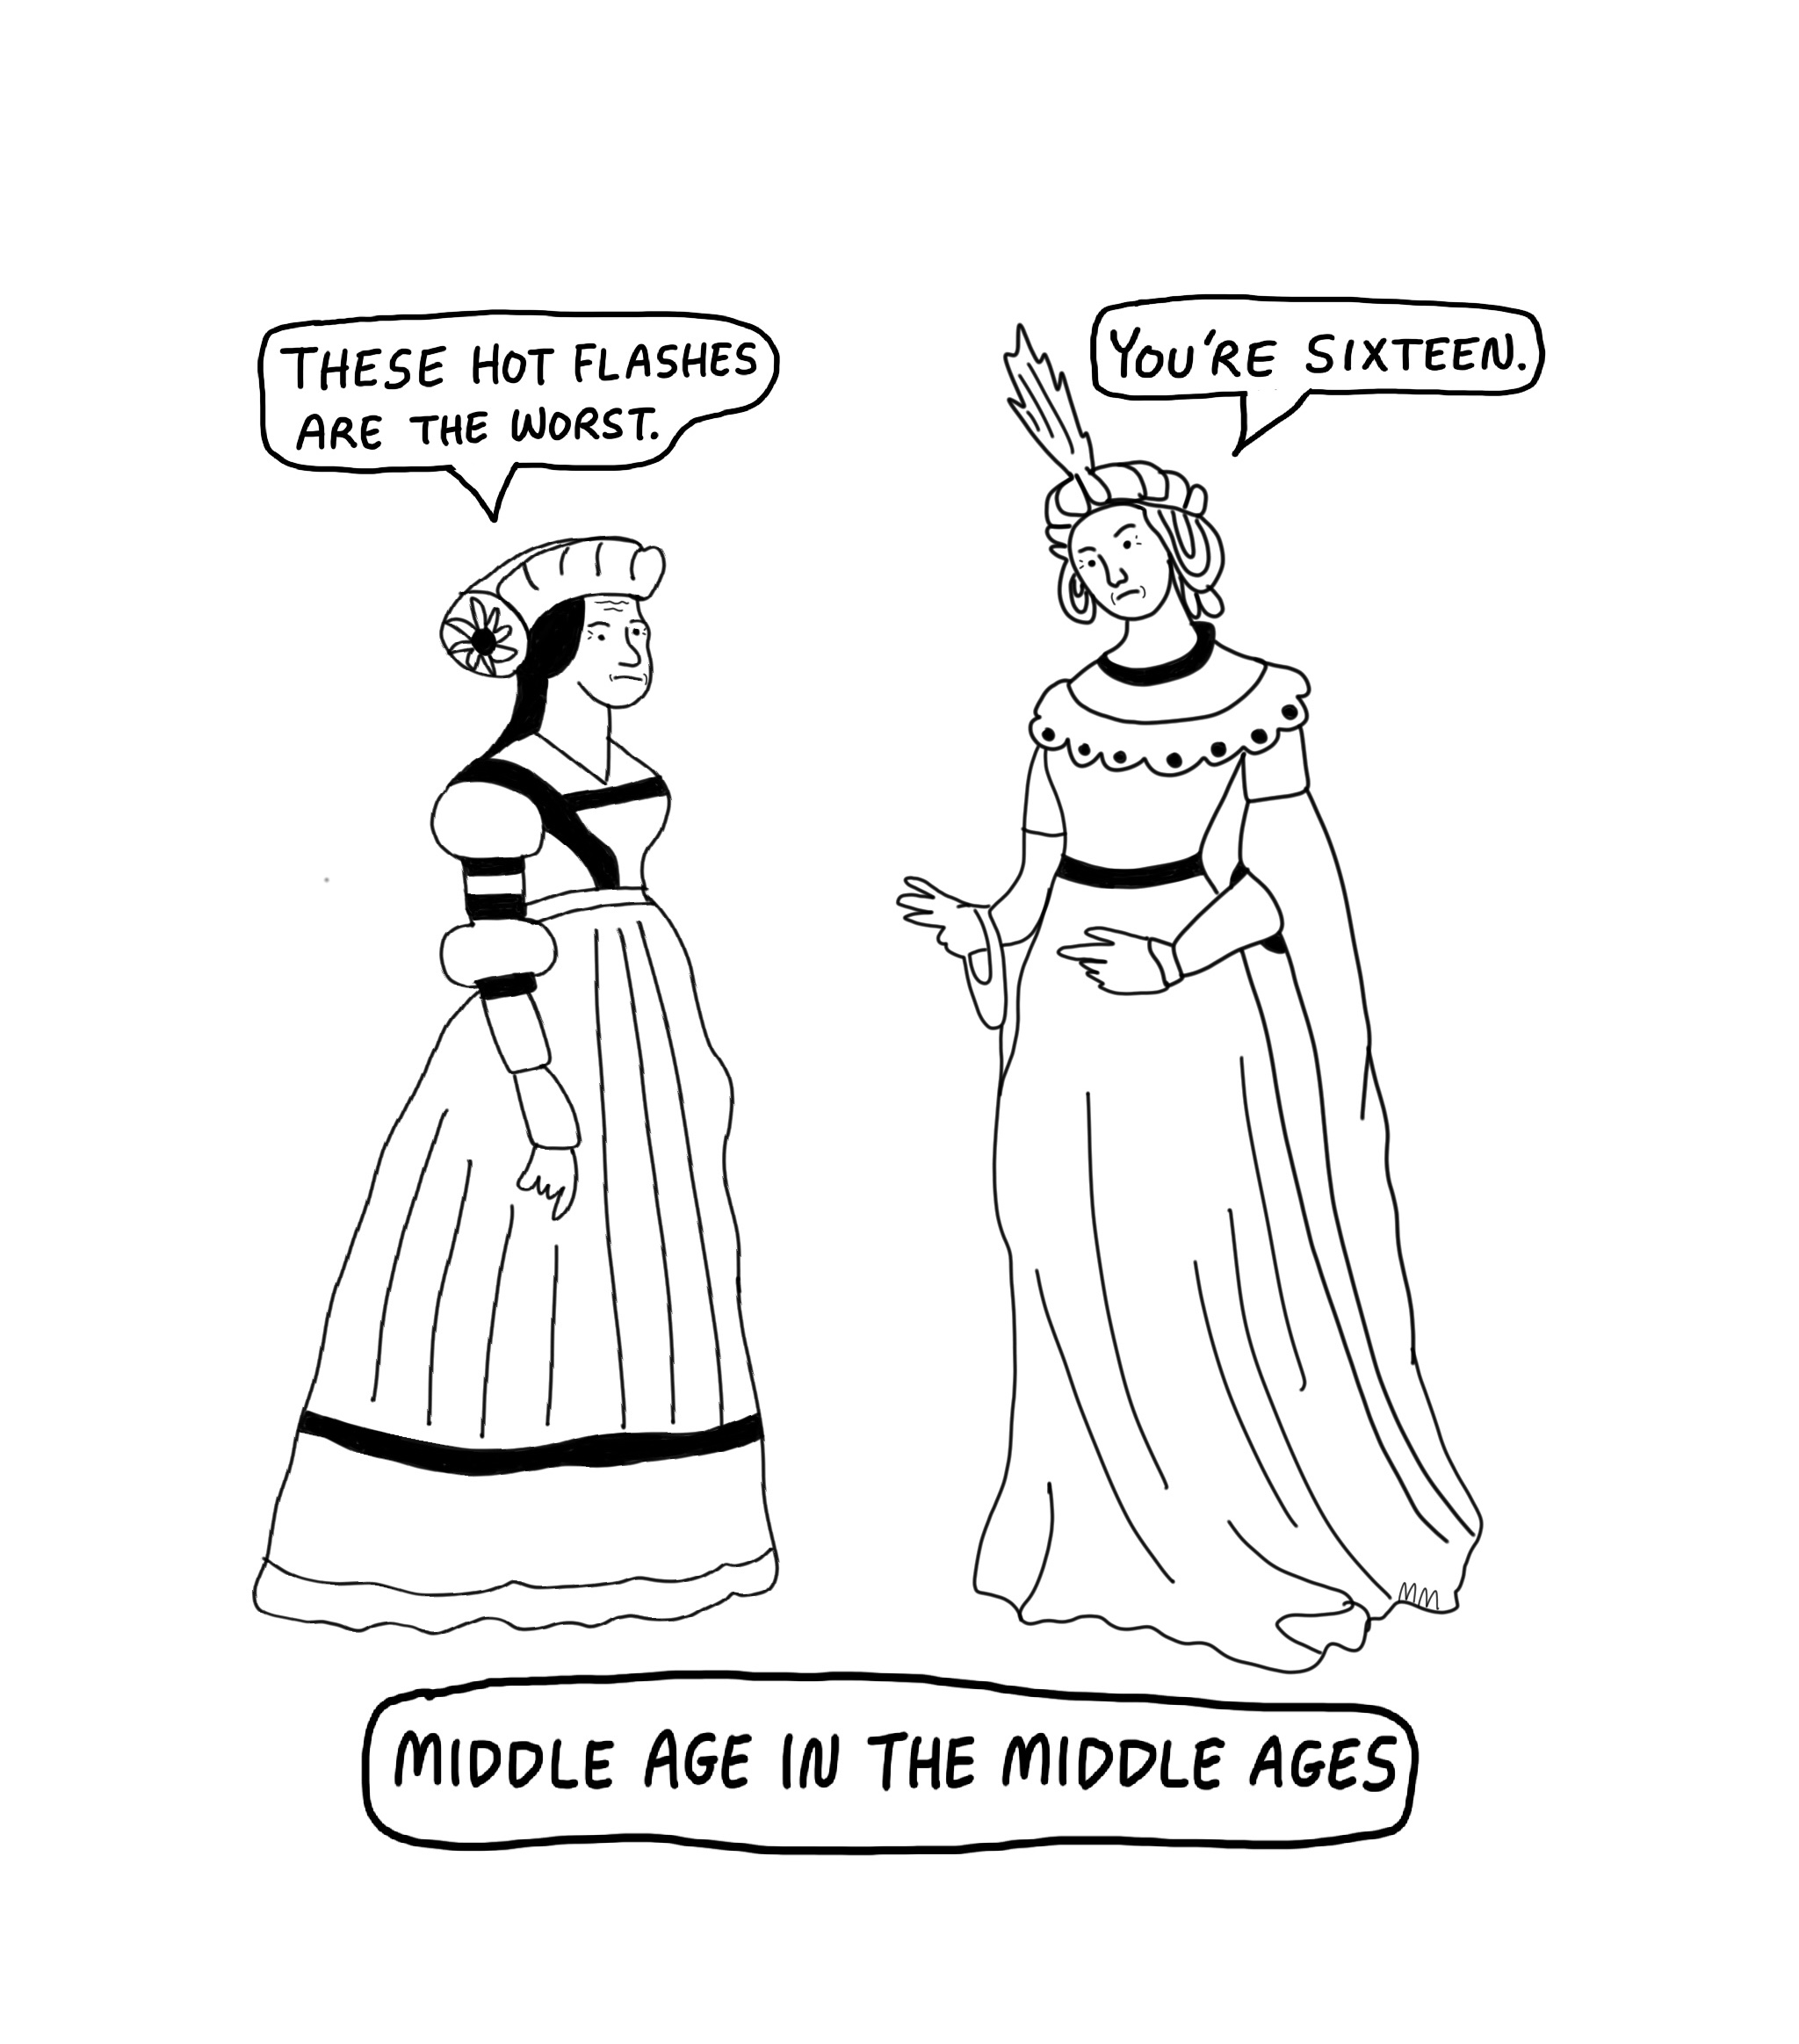 Middle Age in the Middle Ages